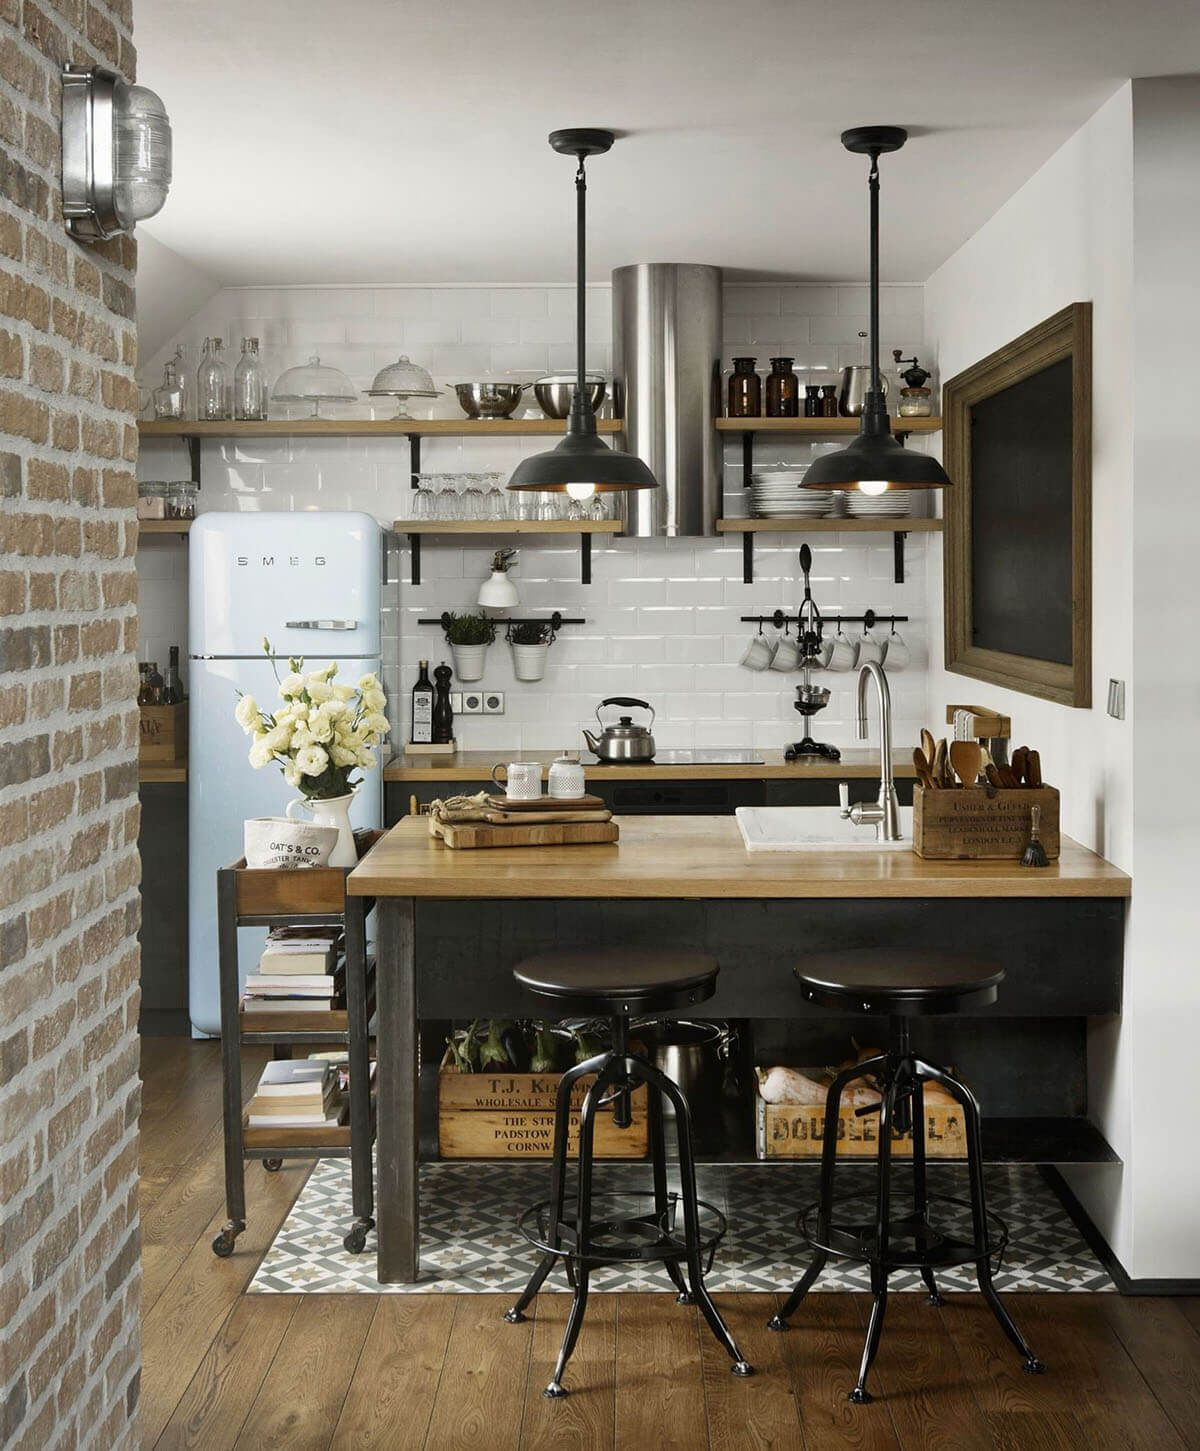 30 Nifty Small Kitchen Design And Decor Ideas To Transform Your Cooking Space Industrial Decor Kitchen Small Kitchen Decor Small Apartment Kitchen